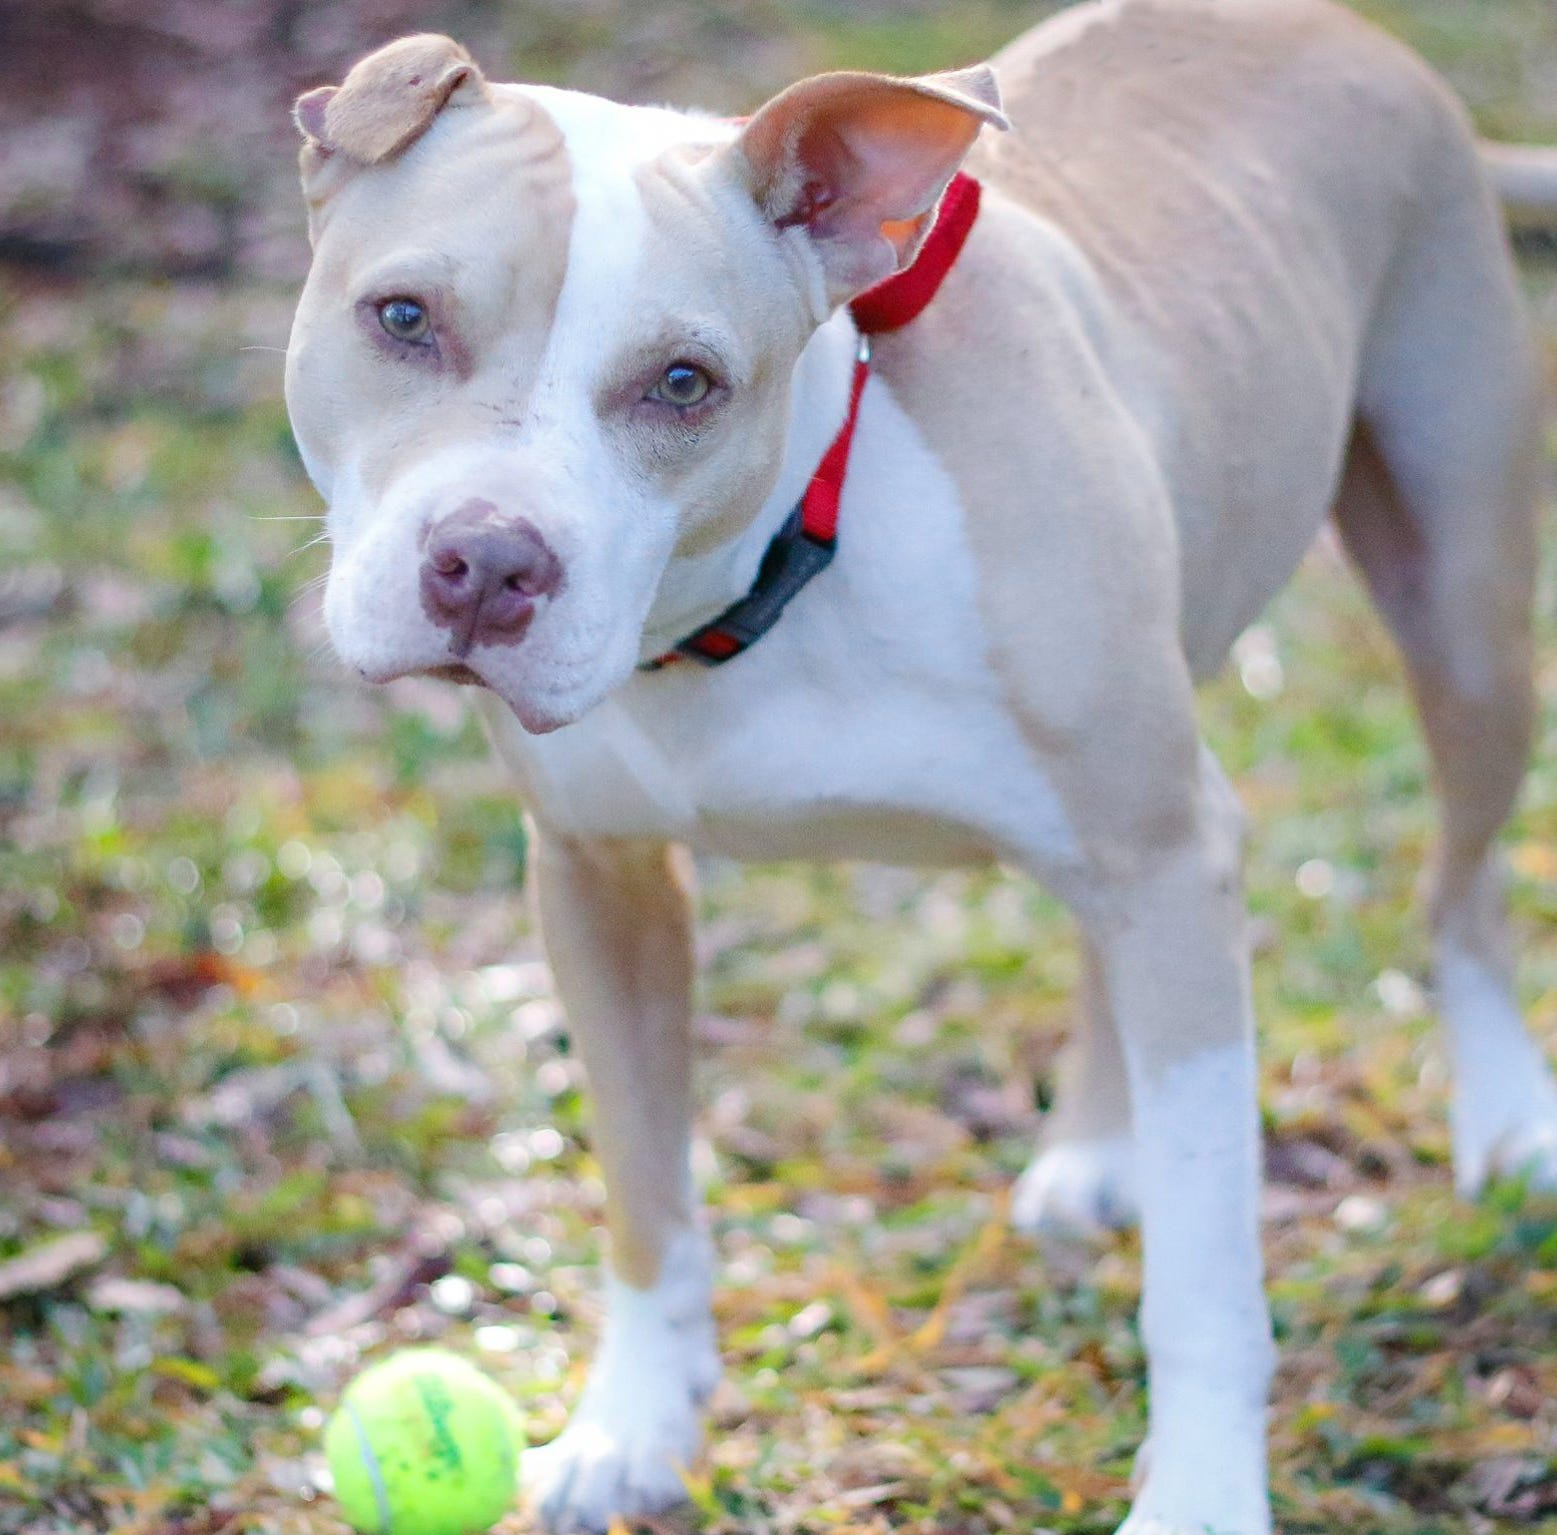 Adoptable pet: Meet Dex